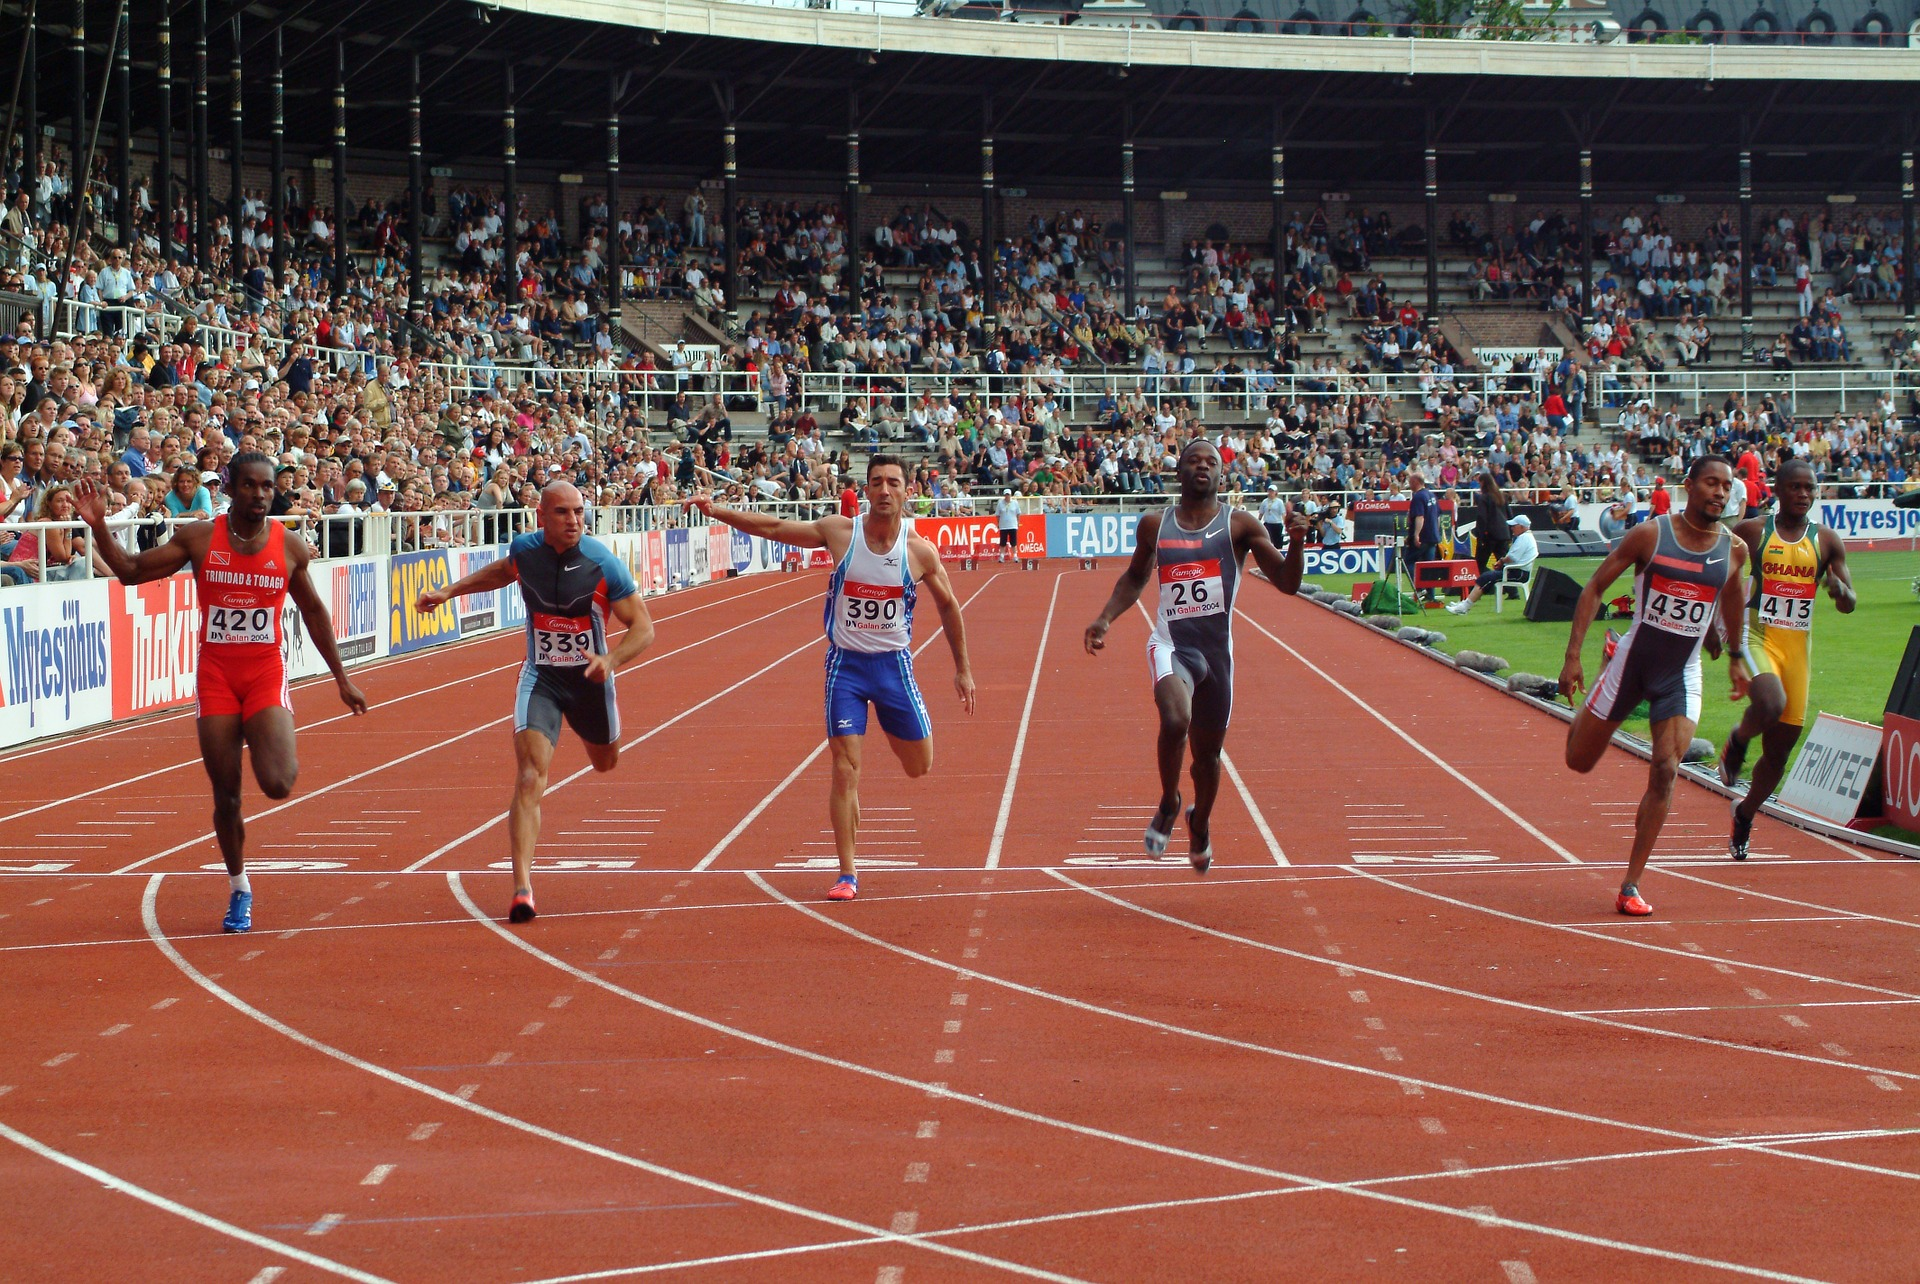 competition-1227639_1920.jpg